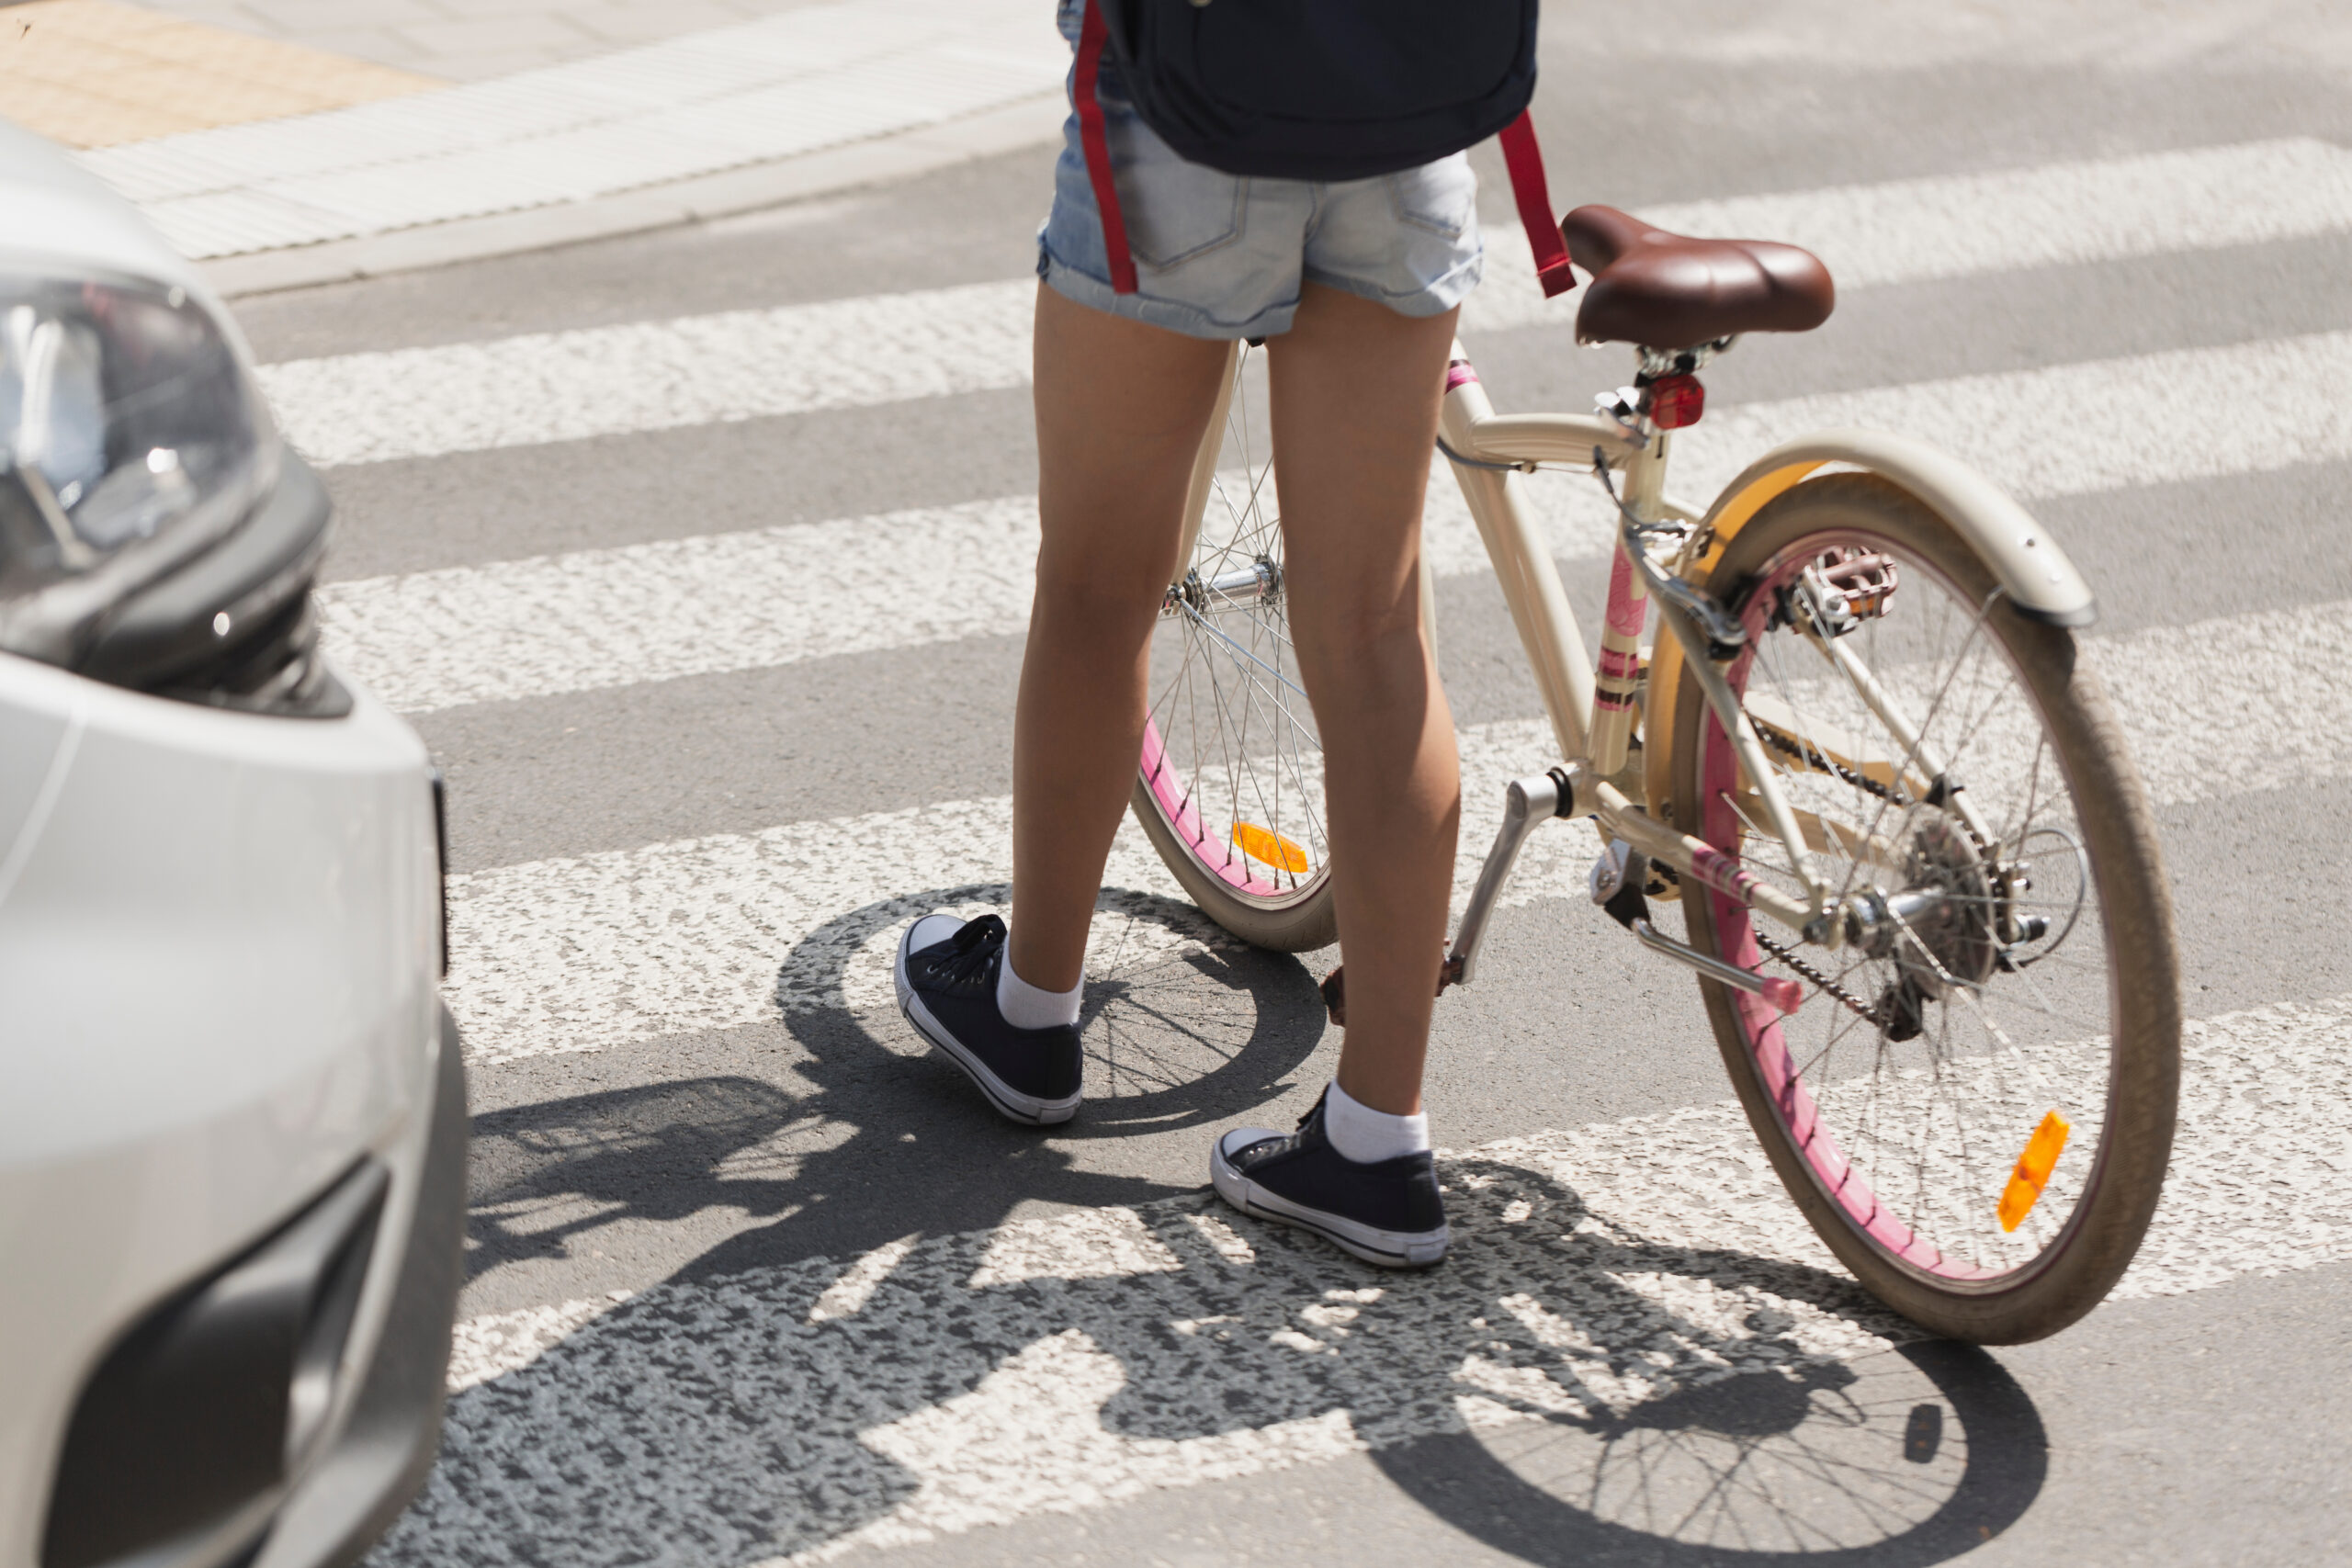 person crossing the street with a bike